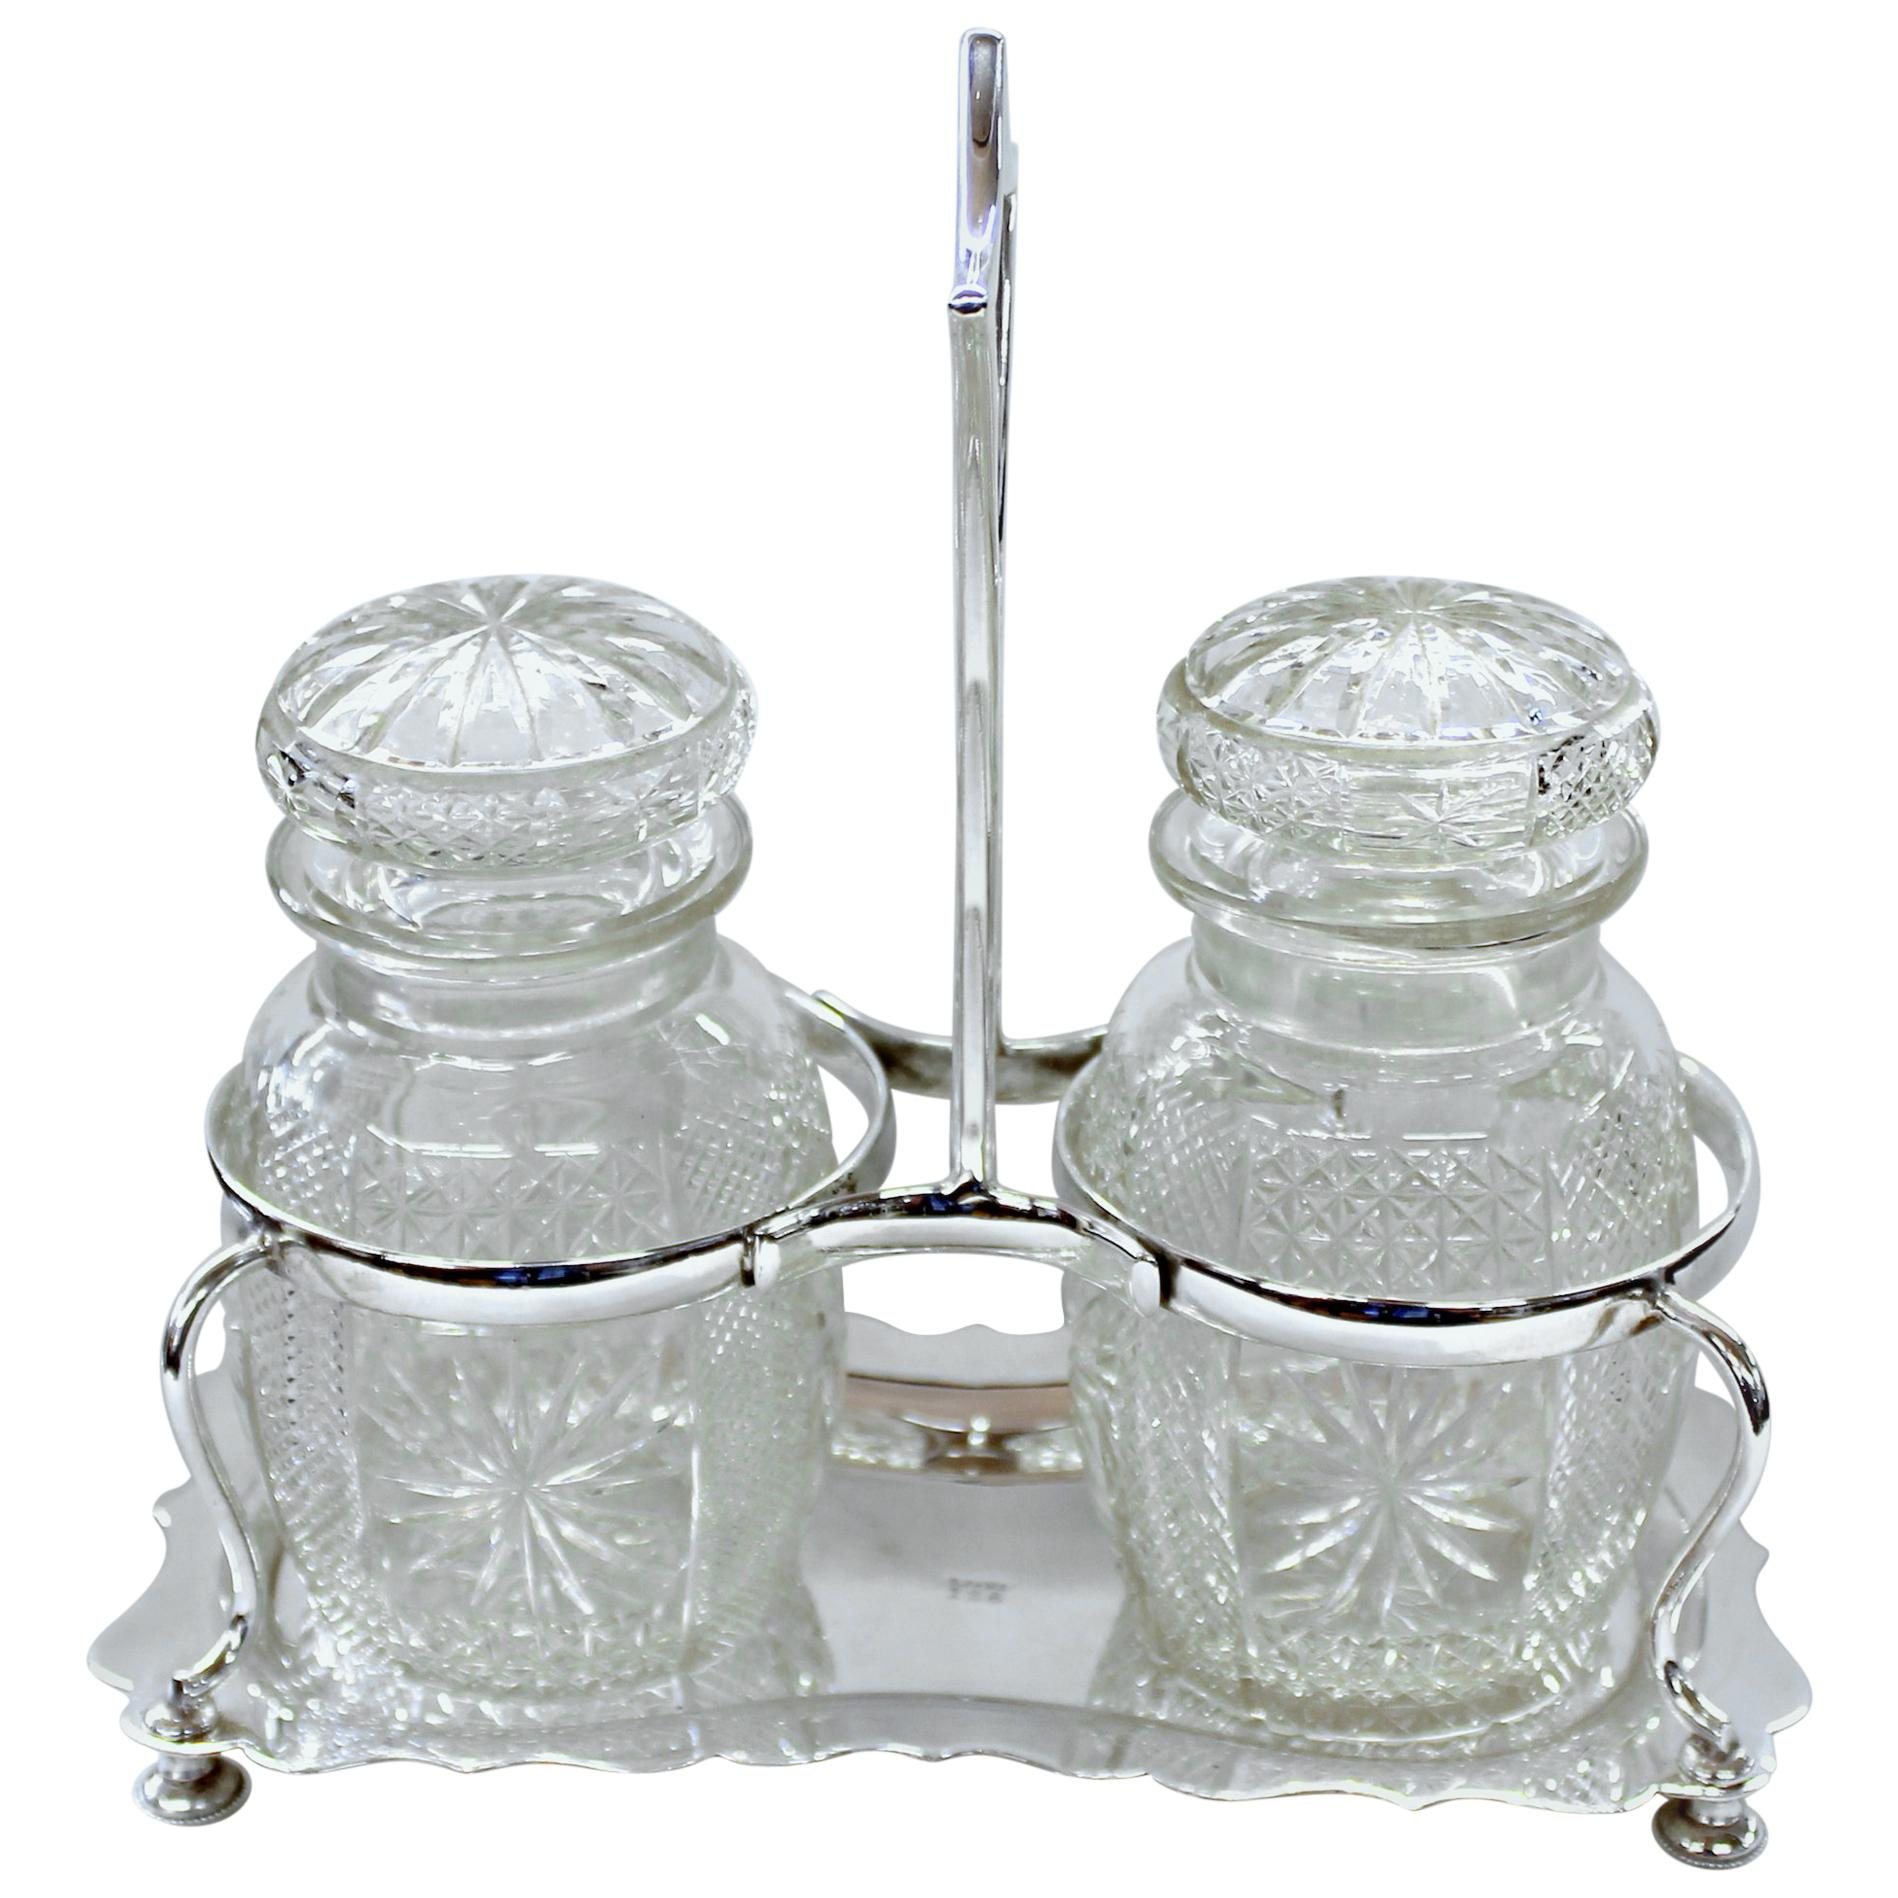 Antique English Silver Plate Hand-Cut Crystal Barrel Shape Double Jar Pickle Set